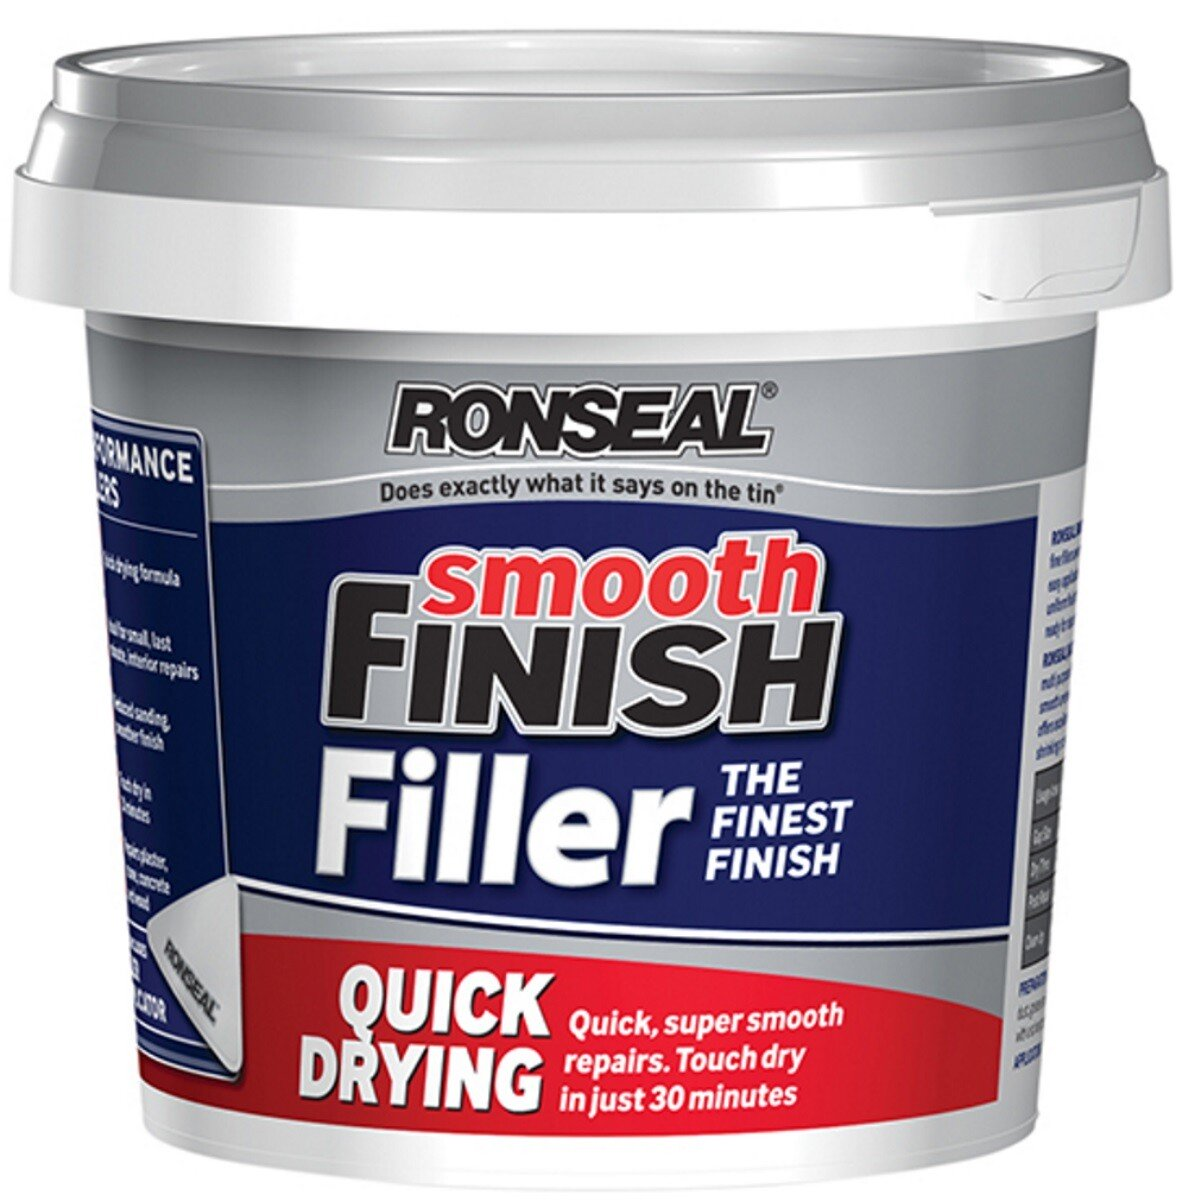 Ronseal 36553 Smooth Finish Quick Drying Multi Purpose Filler 600g RSLQDF600G